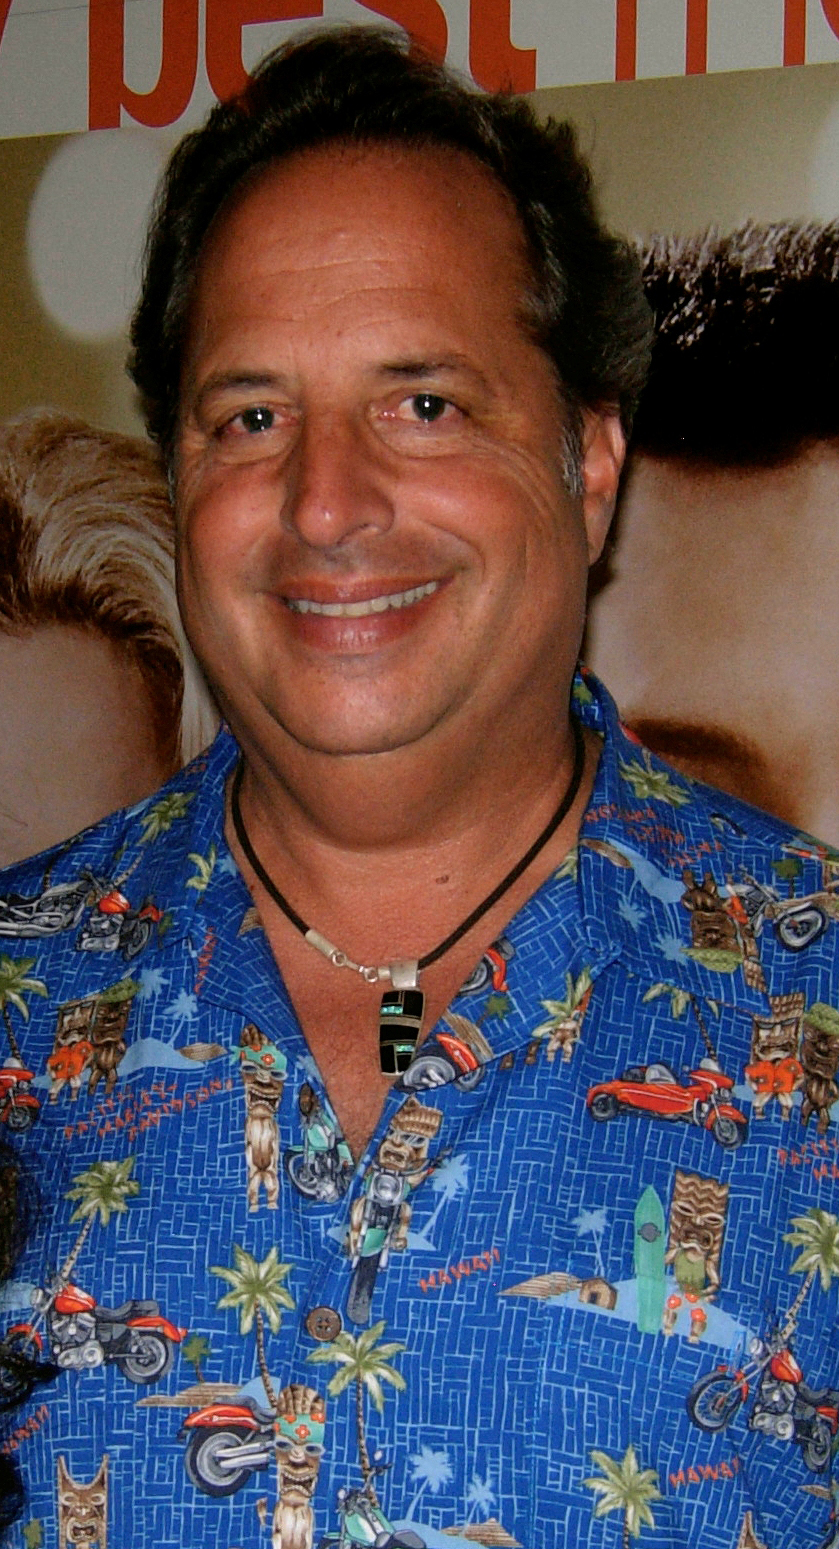 The 61-year old son of father (?) and mother(?) Jon Lovitz in 2018 photo. Jon Lovitz earned a  million dollar salary - leaving the net worth at 12 million in 2018